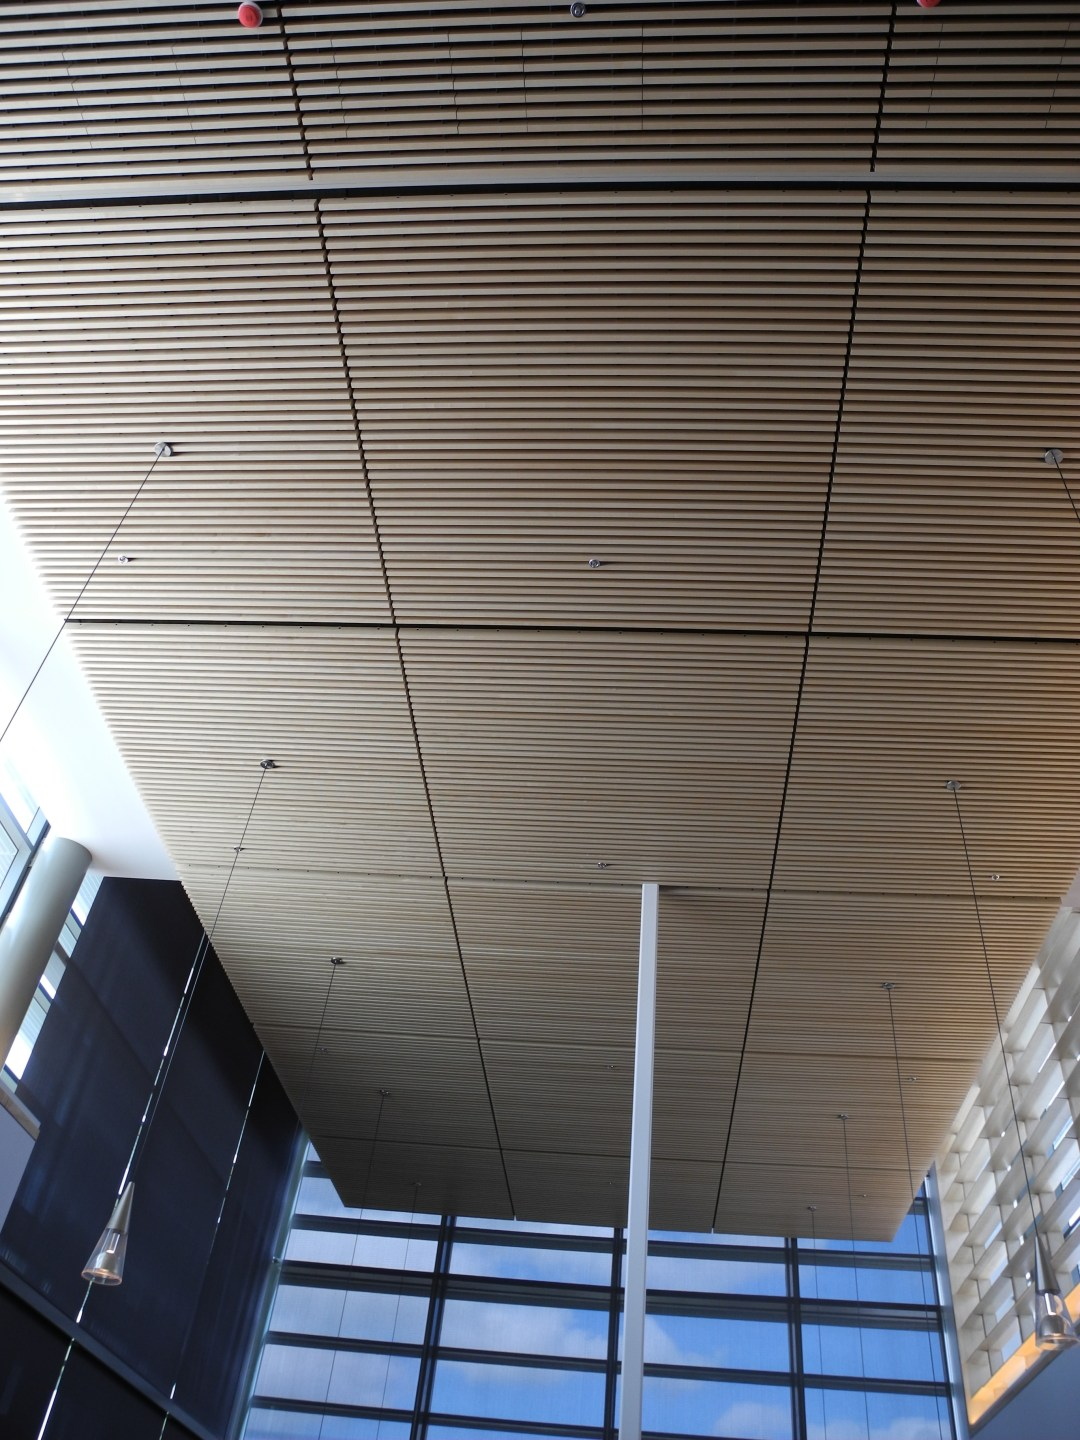 Wooden Acoustical Ceiling from Max PlancK